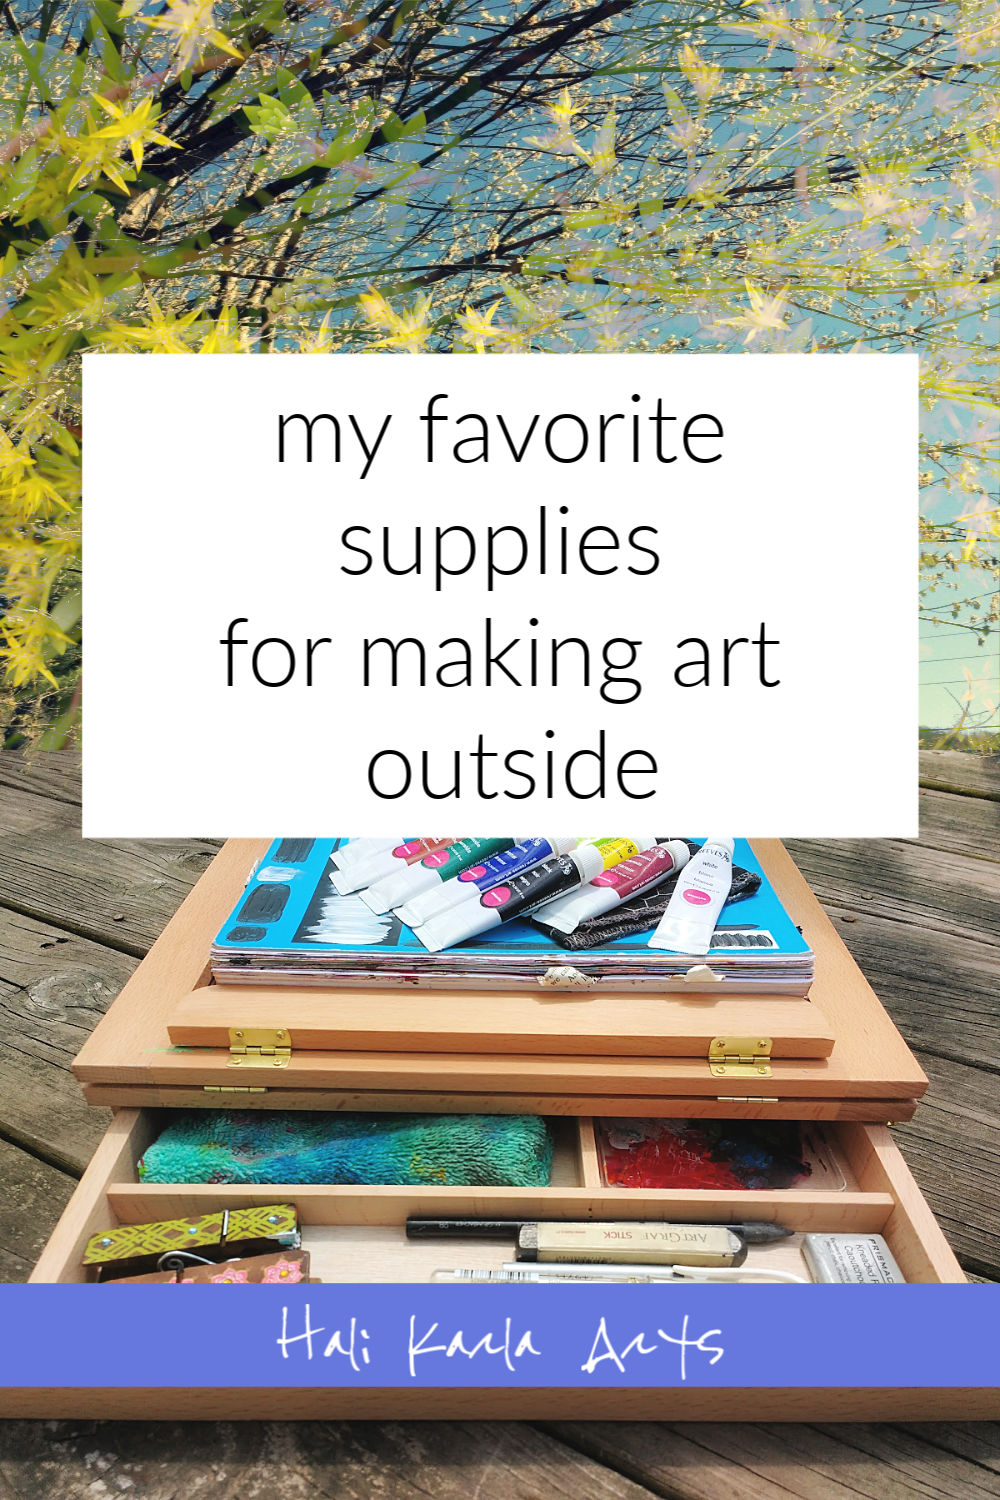 here are some of my favorite art supplies for taking my creative practice outside (Hali Karla Arts)